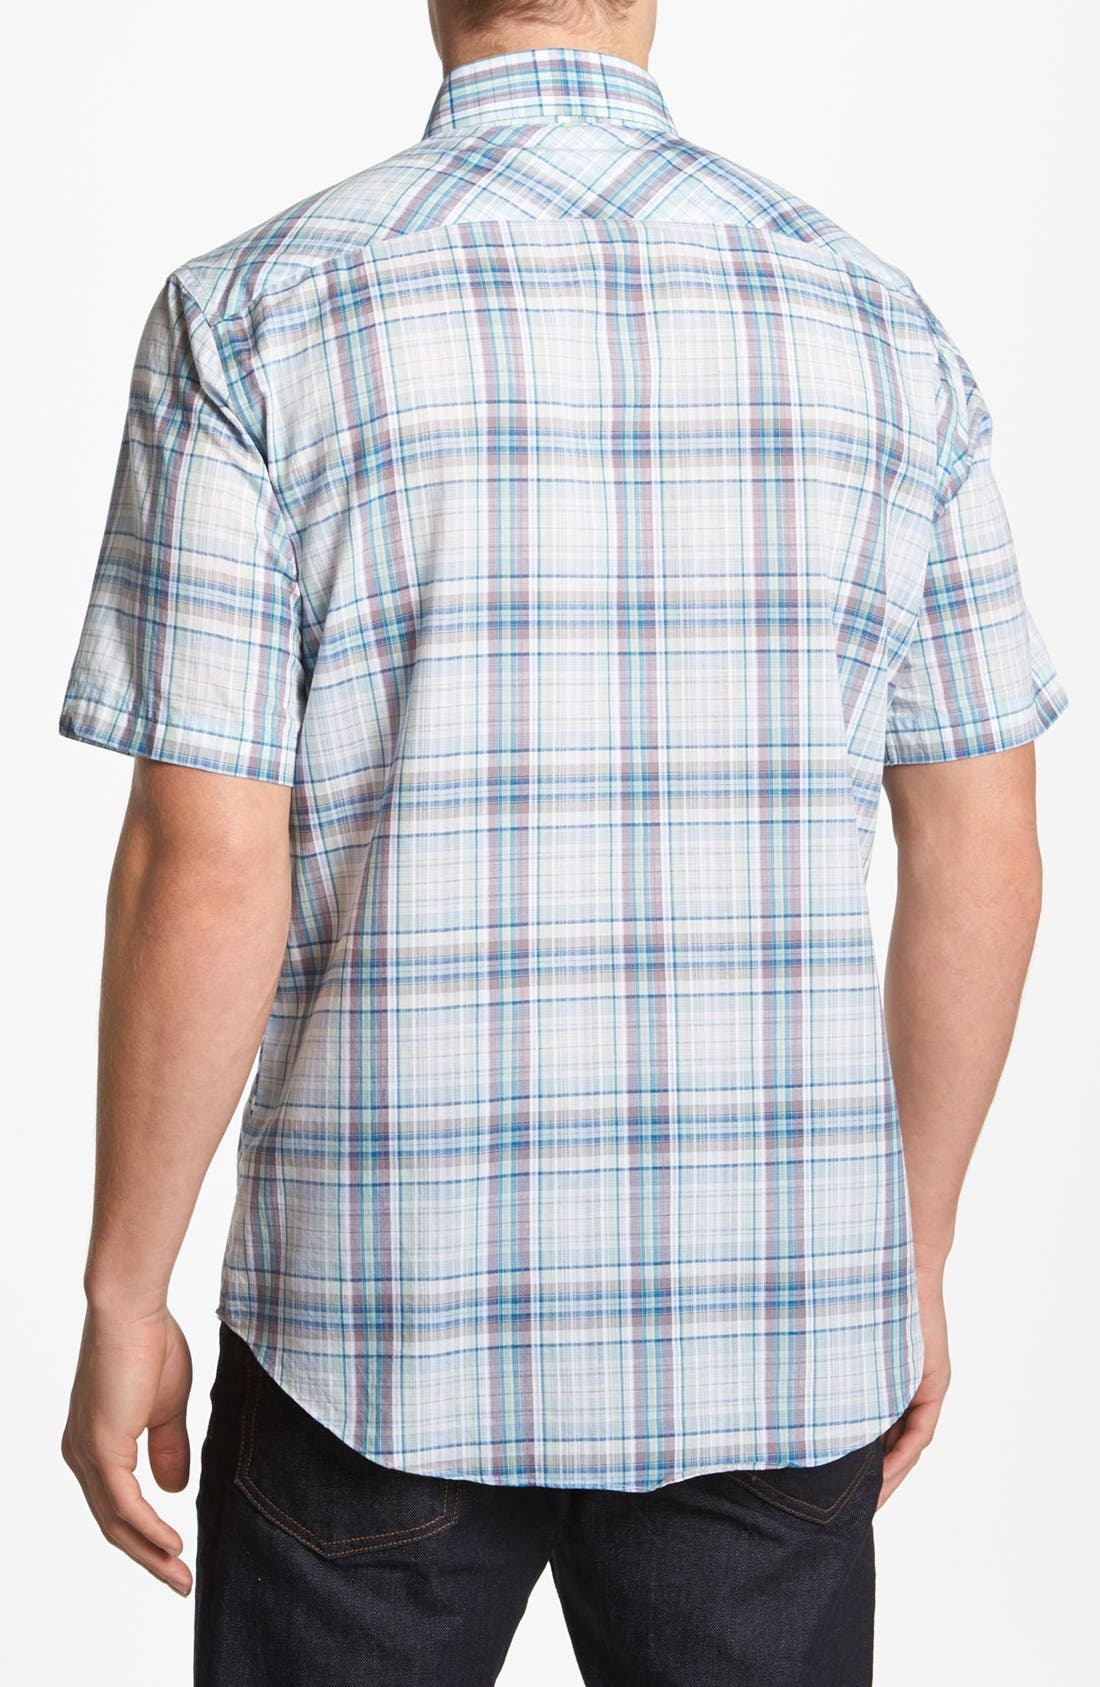 Alternate Image 2  - Zachary Prell 'Soffer' Short Sleeve Sport Shirt